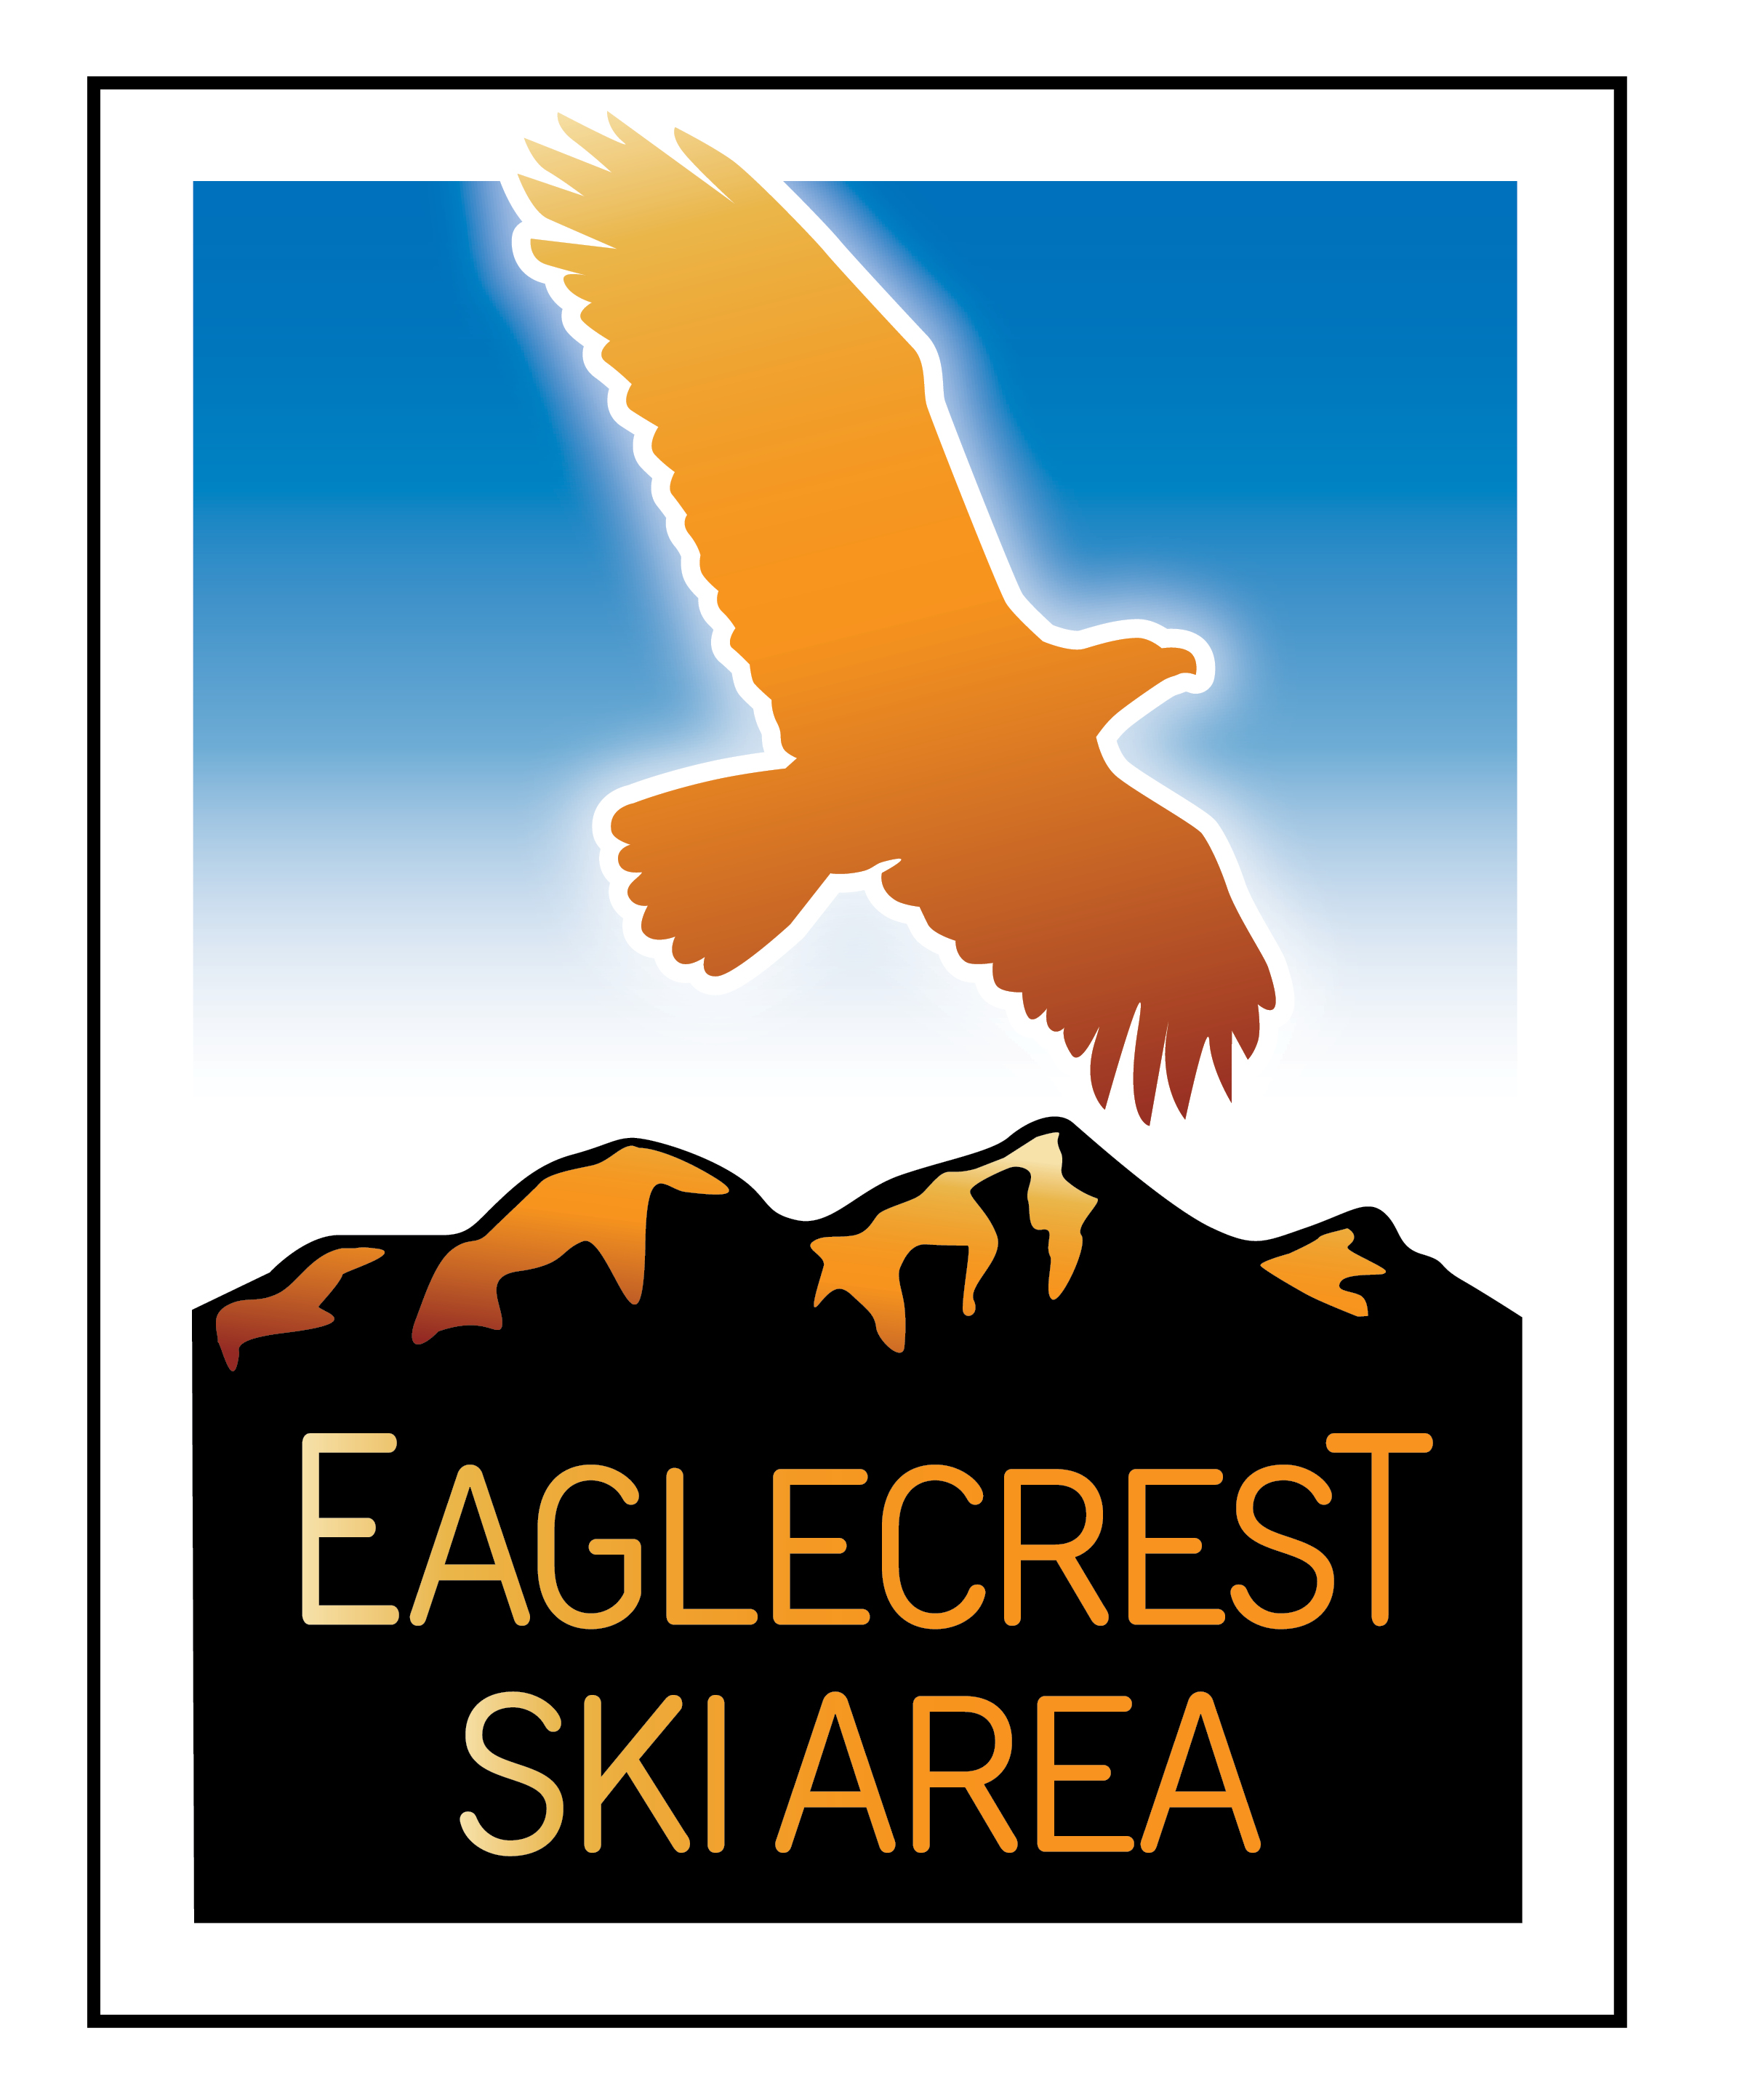 Eaglecrest_New_Logo.jpg_060316.jpg